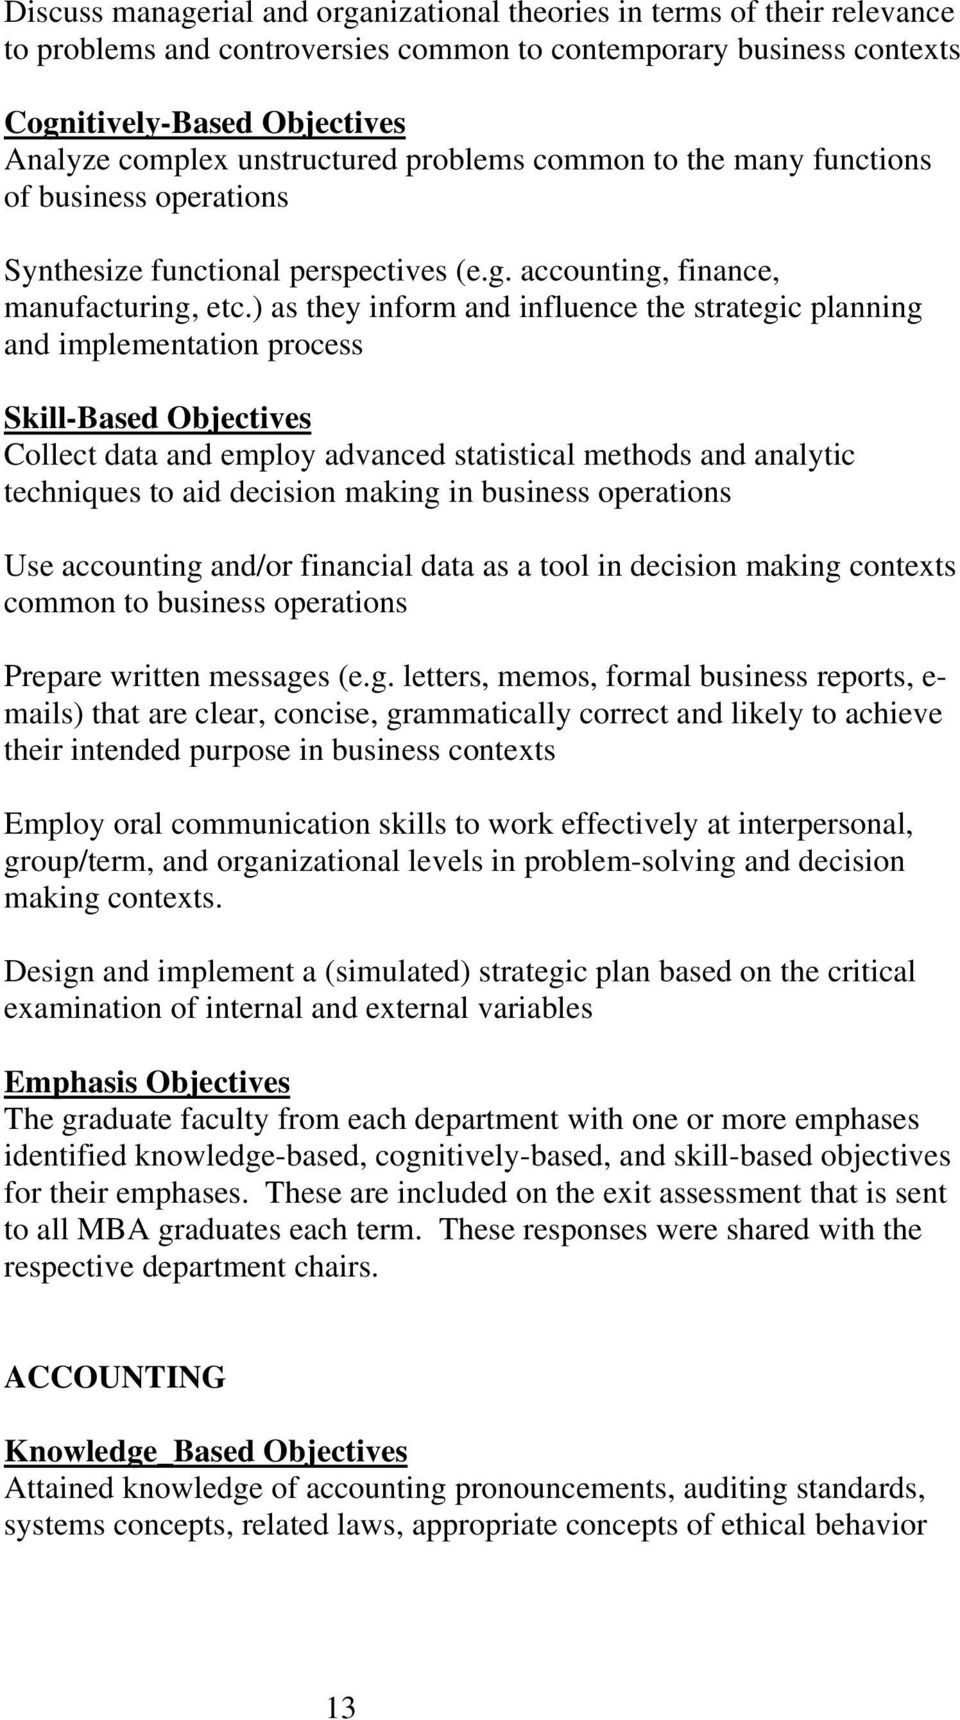 ) as they inform and influence the strategic planning and implementation process Skill-Based Objectives Collect data and employ advanced statistical methods and analytic techniques to aid decision